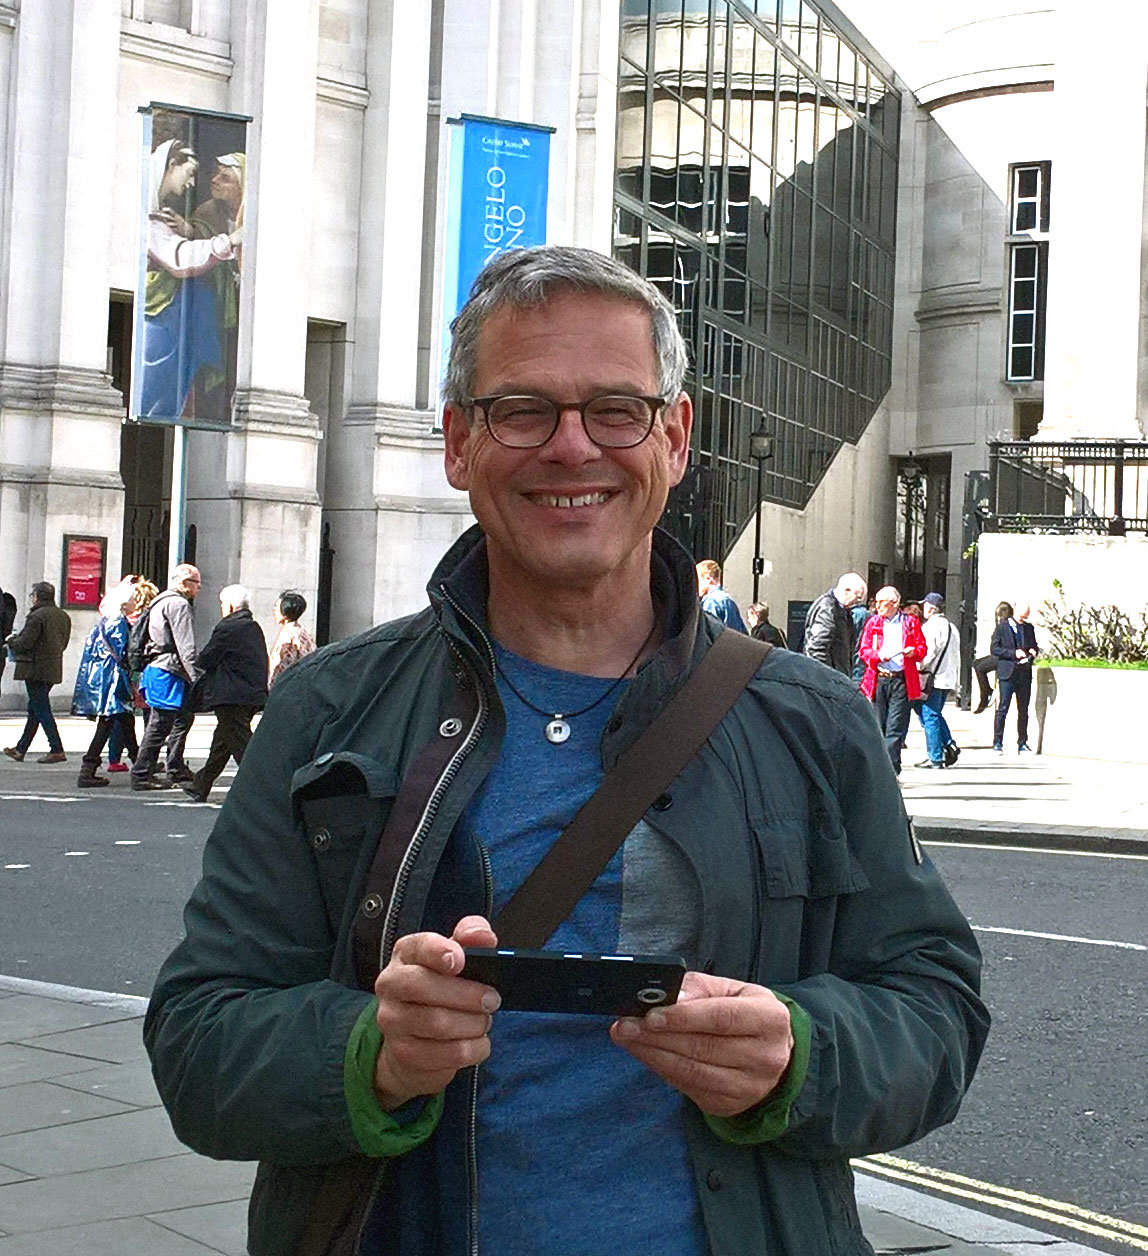 Wolfgang-Irber-in-London